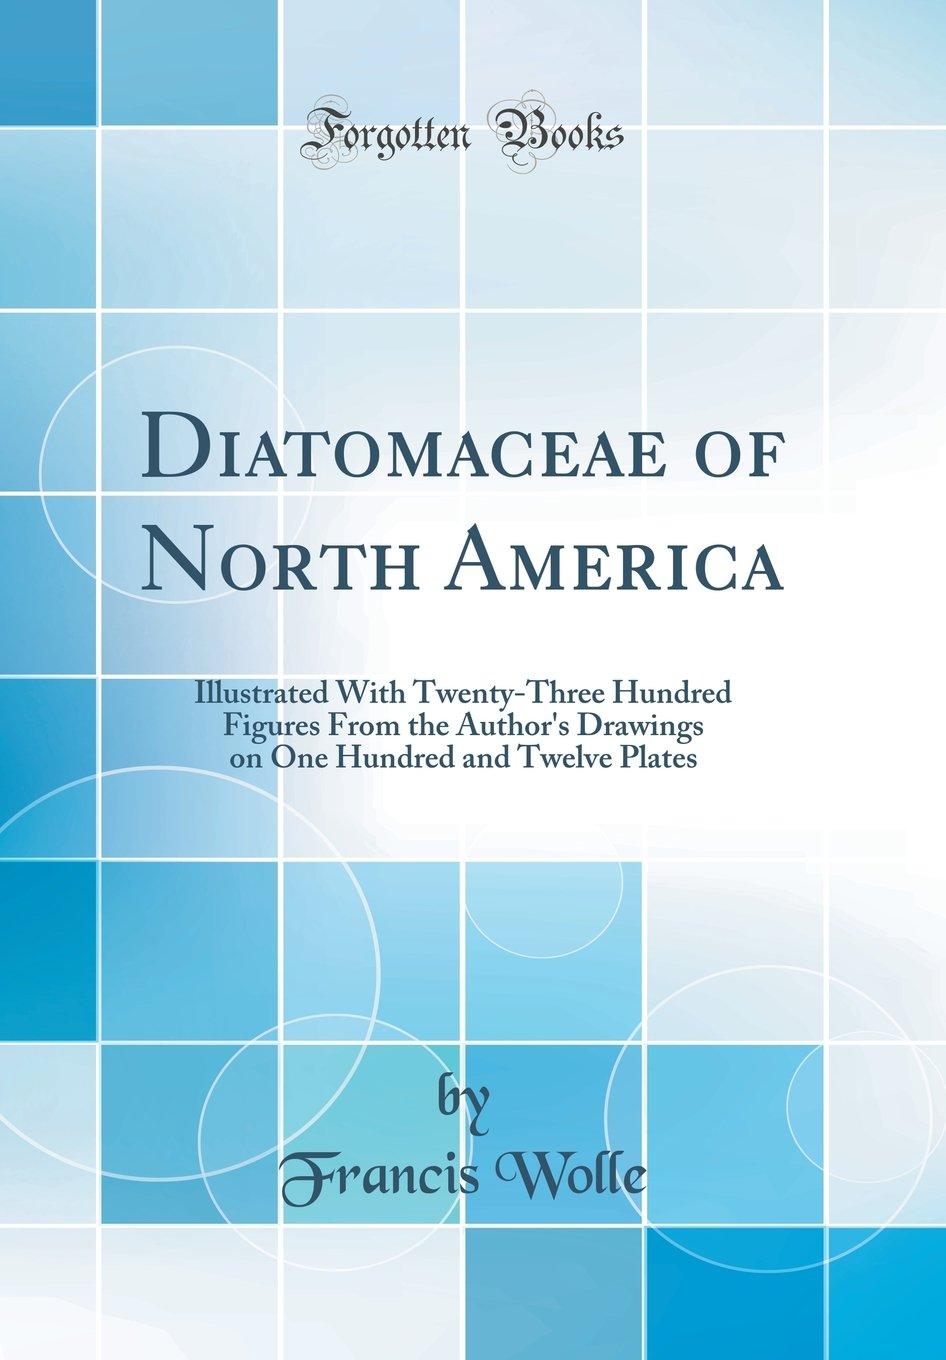 Diatomaceae of North America: Illustrated with Twenty-Three Hundred Figures from the Author's Drawings on One Hundred and Twelve Plates (Classic Reprint) pdf epub